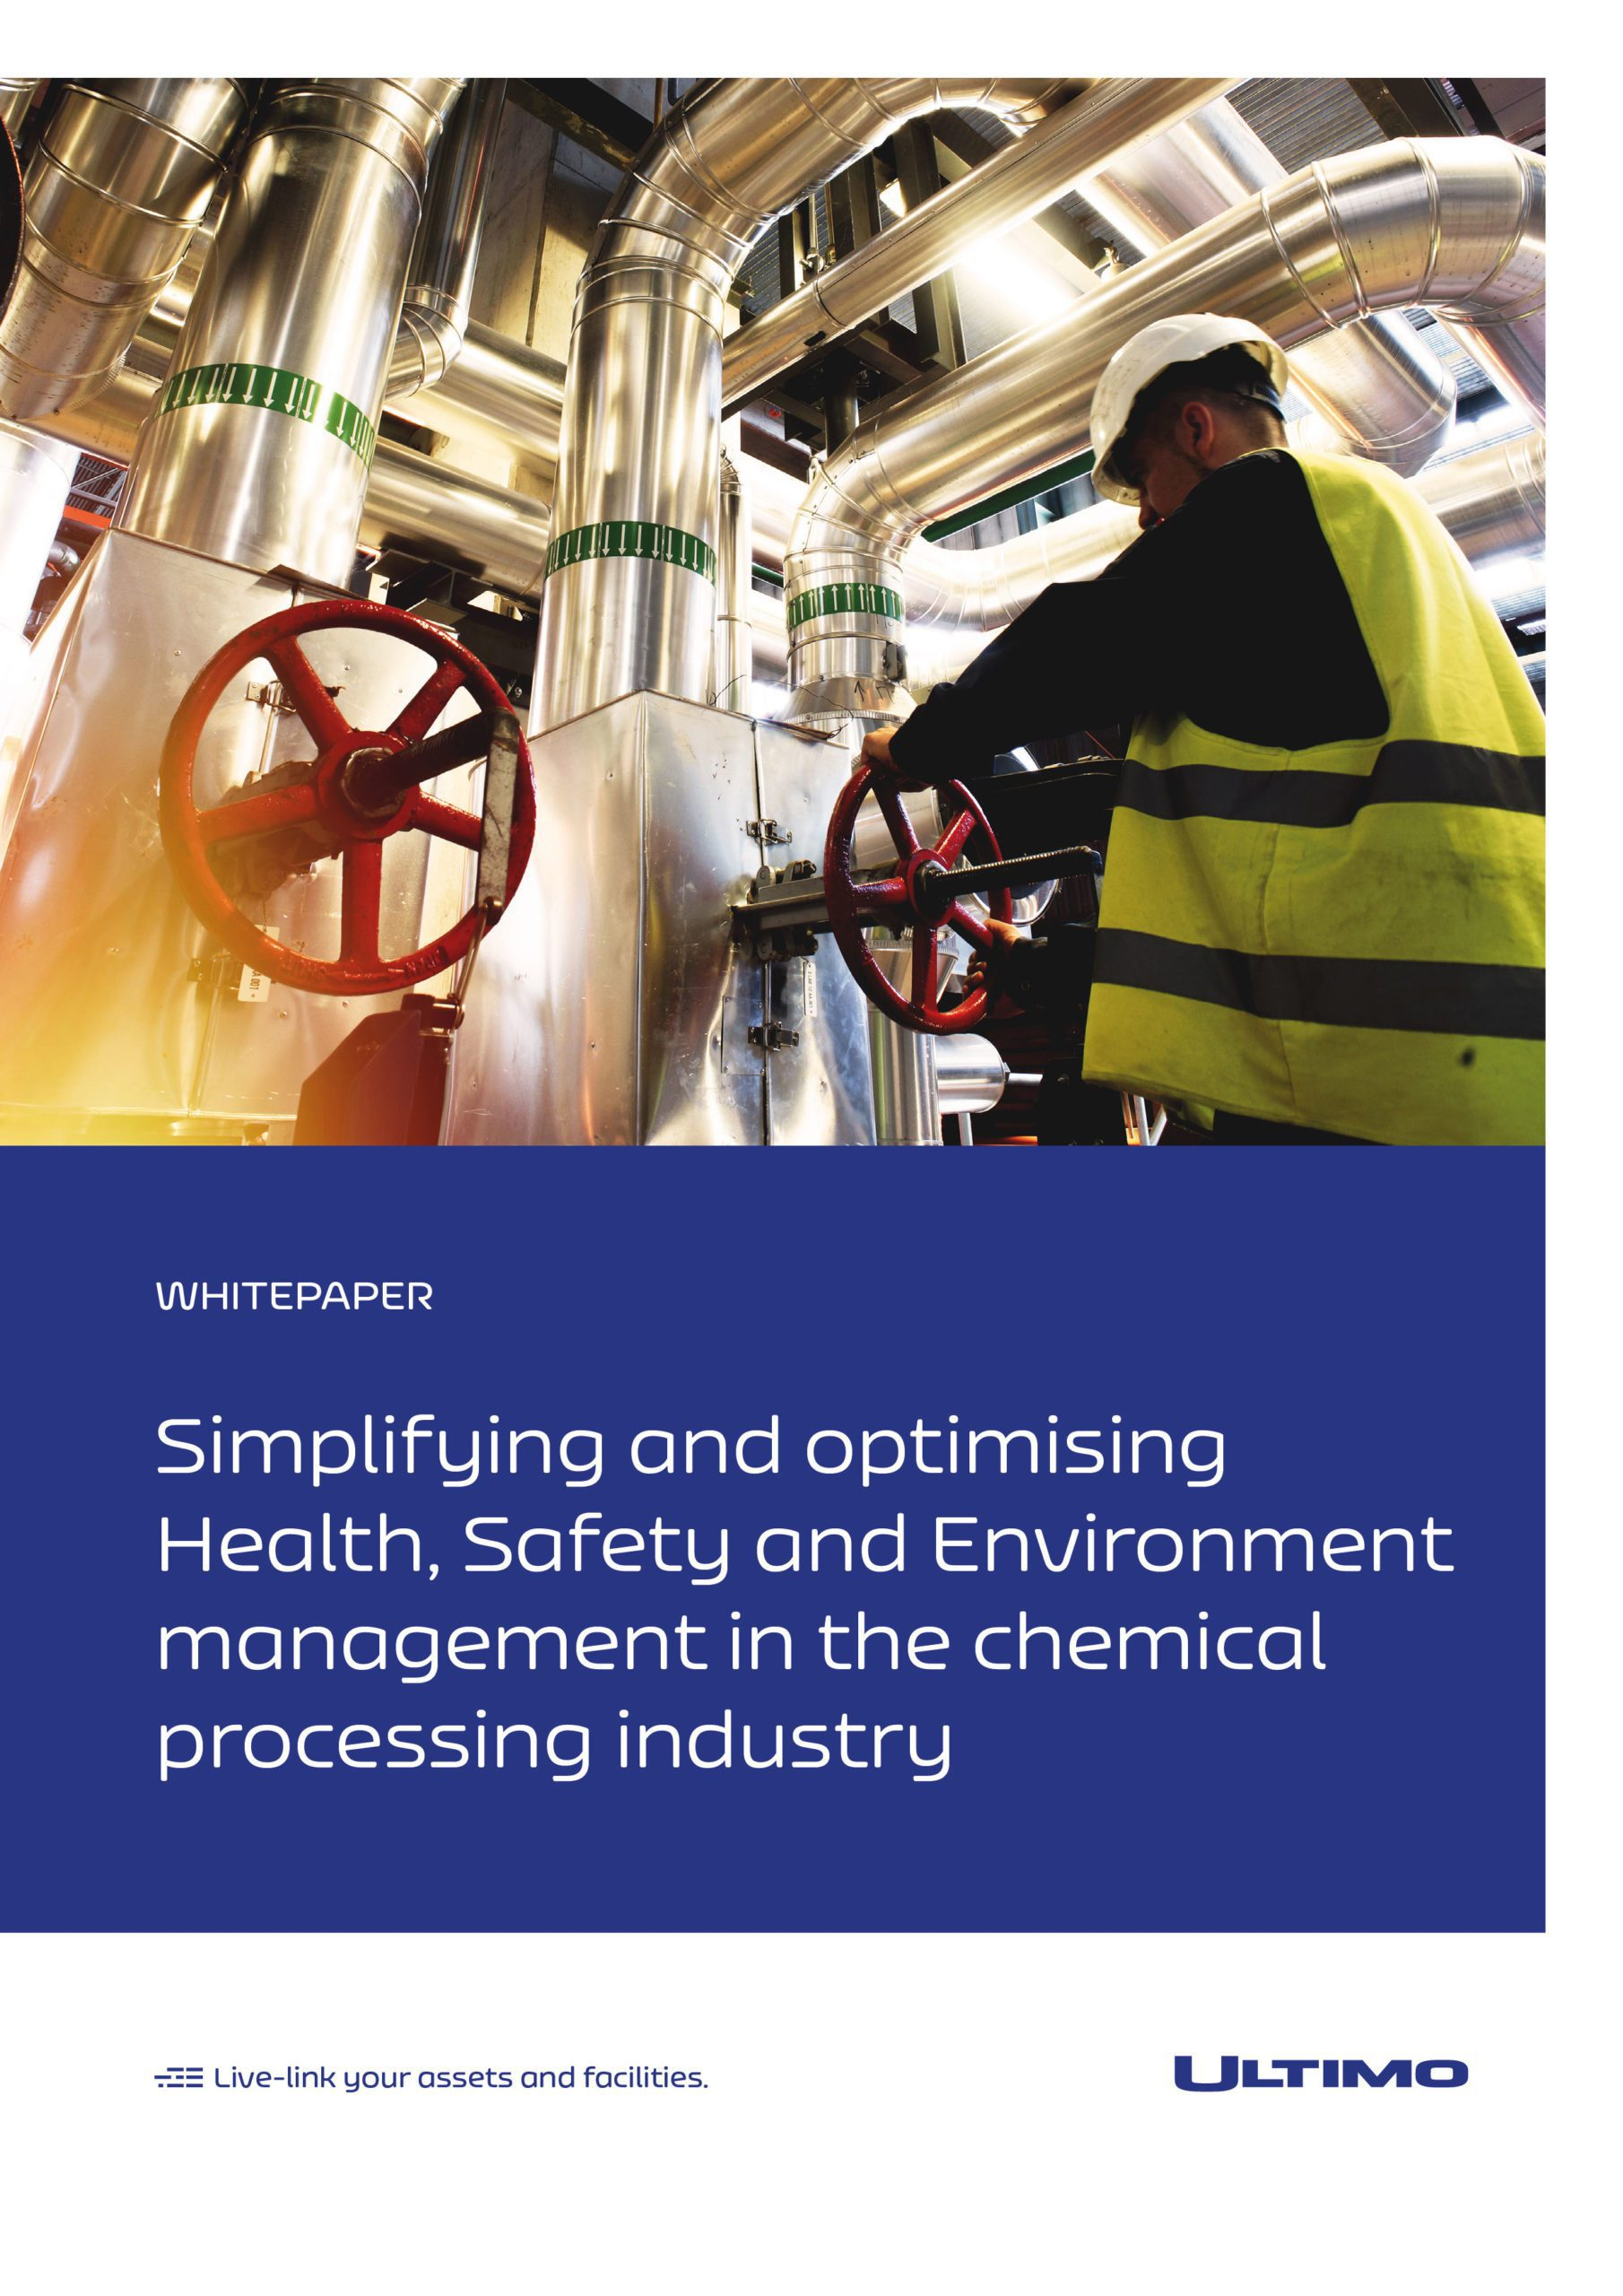 Integration of HSE and maintenance management is the key to improved performance in chemical processing sector